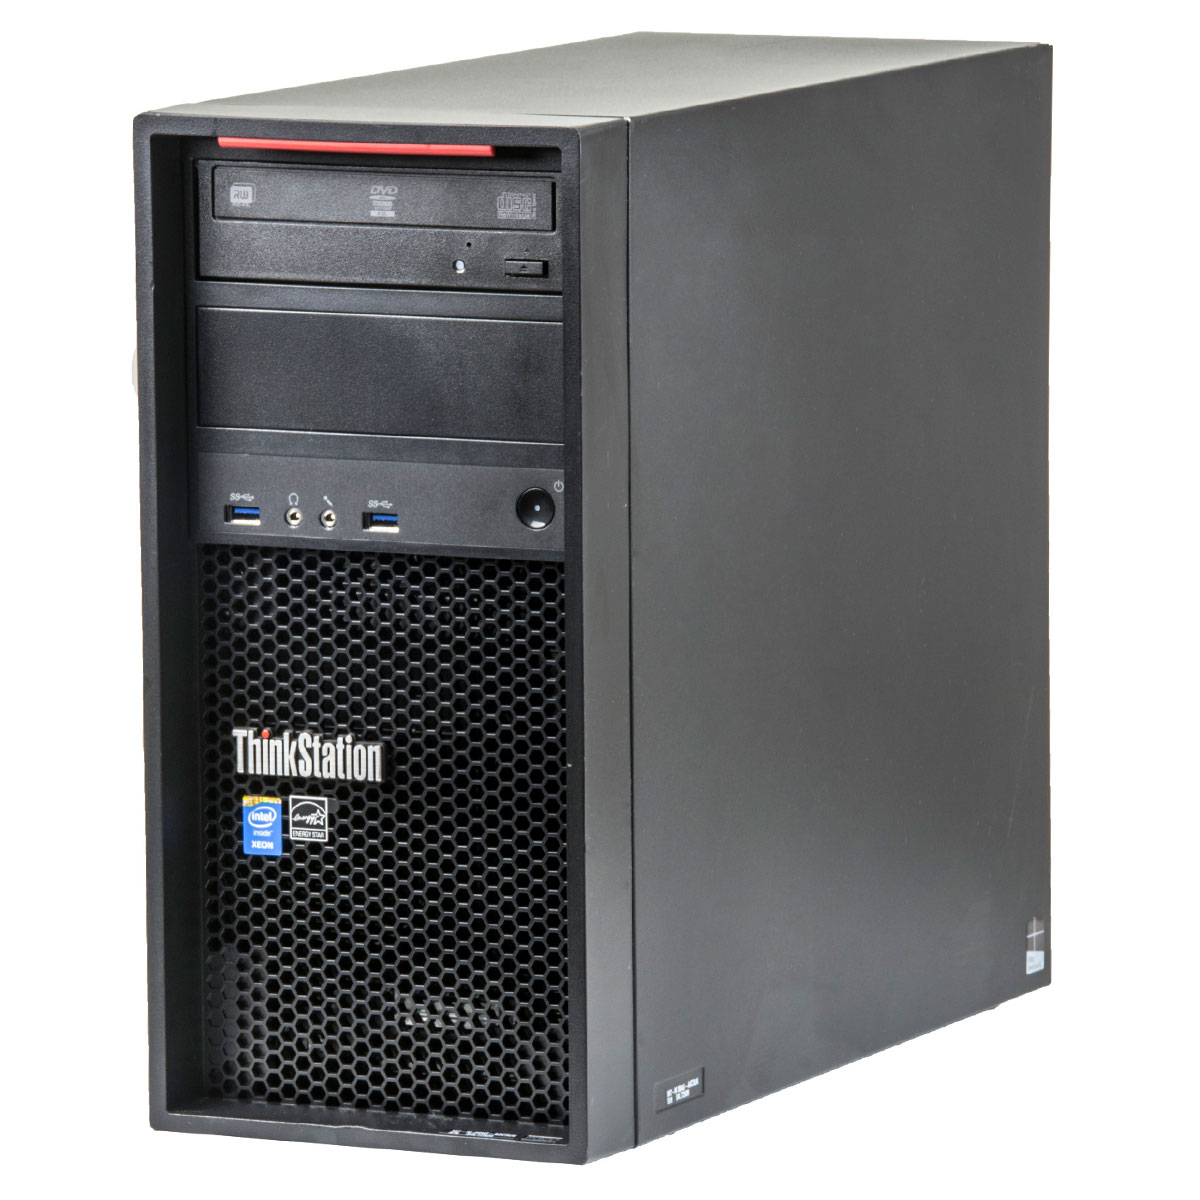 Lenovo ThinkStation P300 Intel Core i3-4160T 3.10GHz  8GB DDR3  256GB SSD  DVD-RW  Tower  workstation refurbished